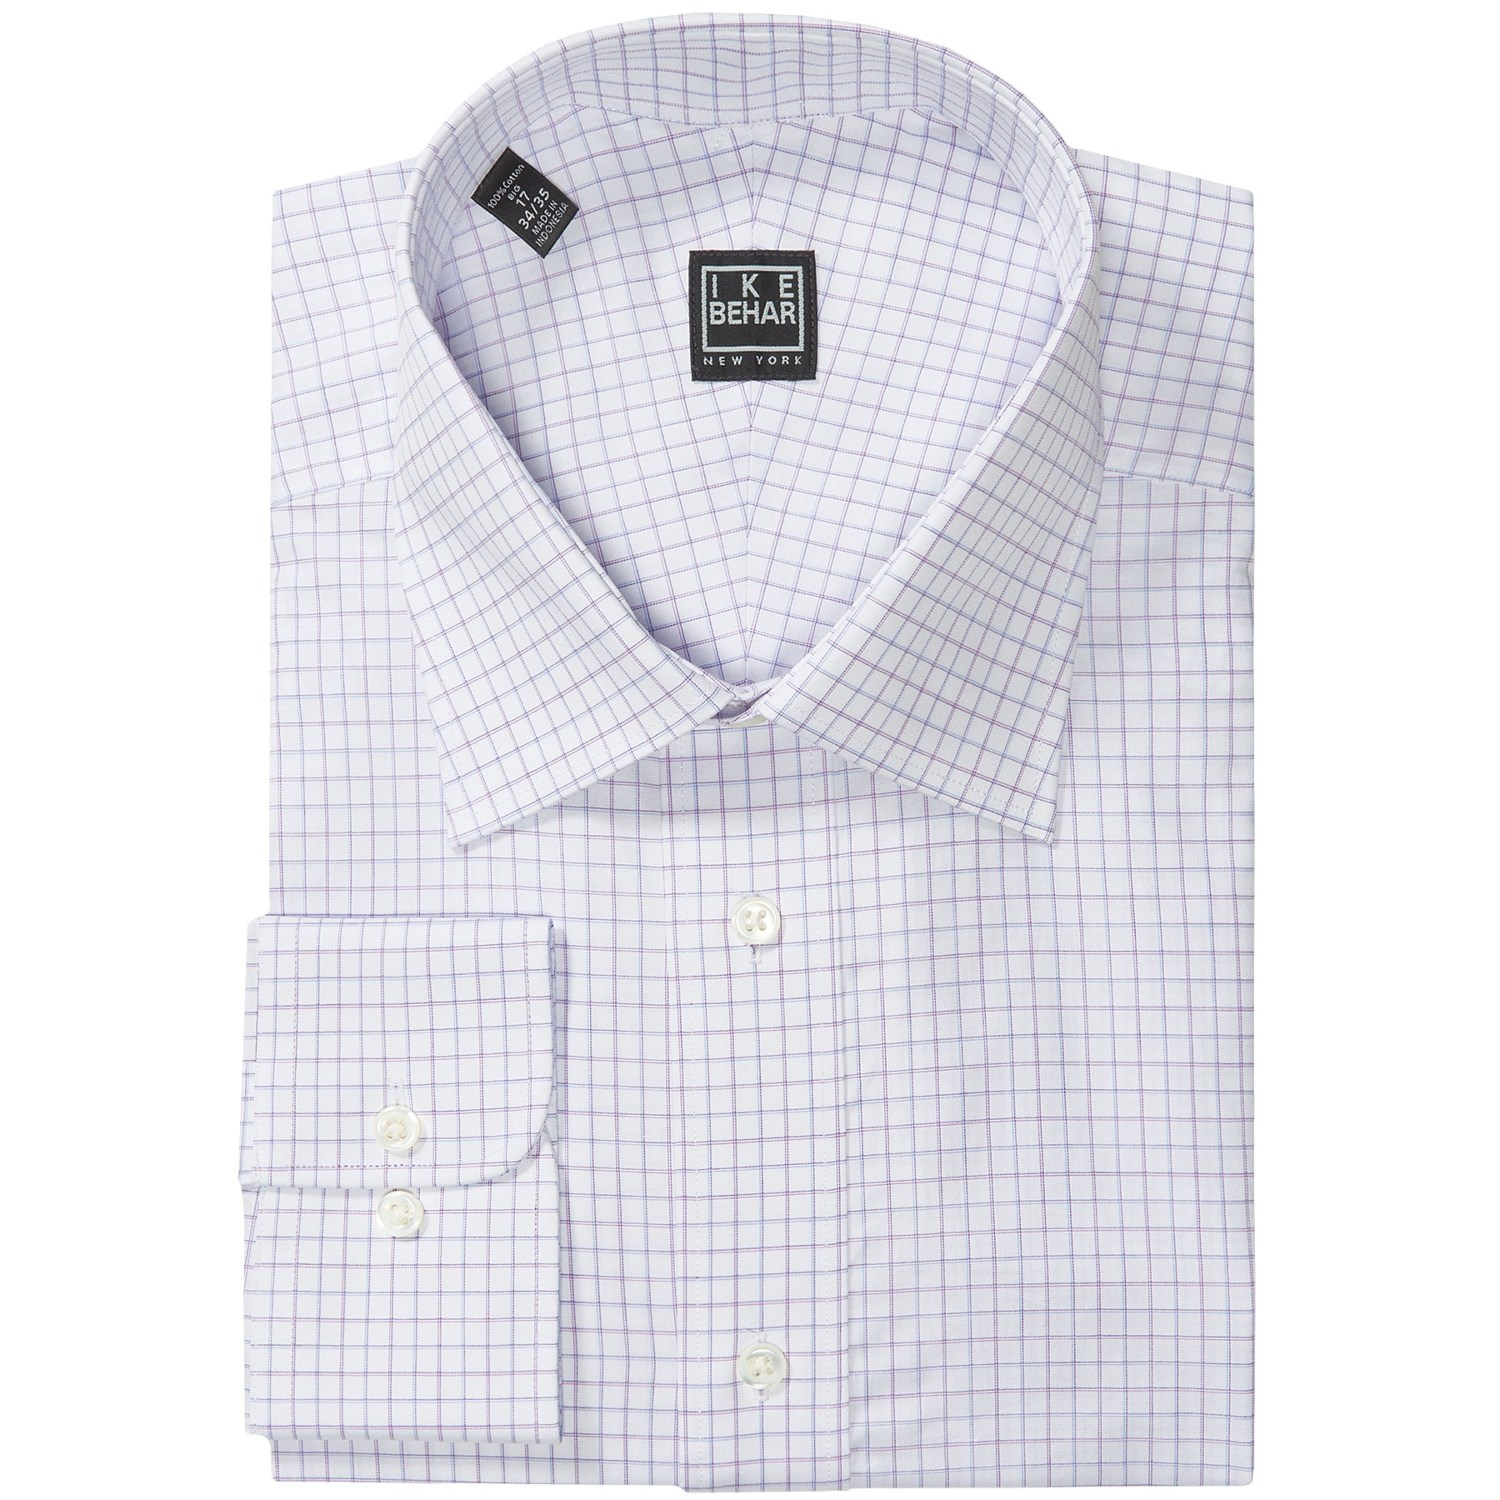 Ike behar black label check dress shirt long sleeve for for Dress shirts for big and tall